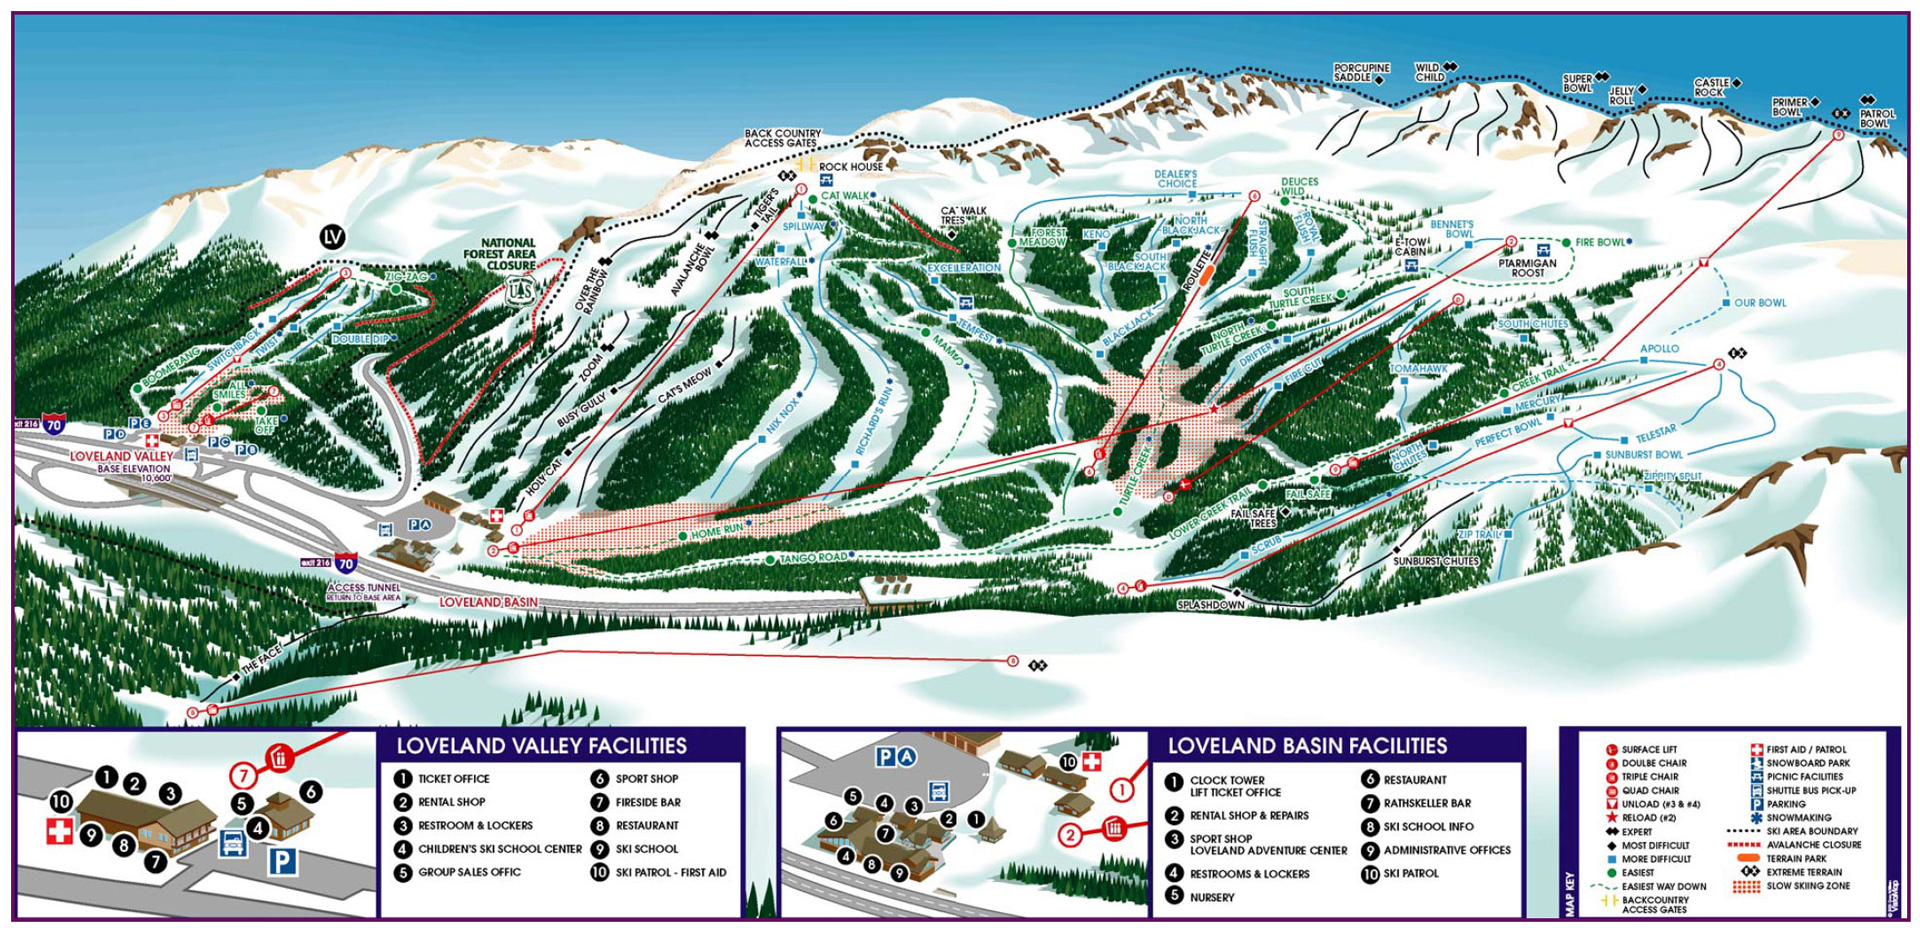 land Ski Area | Skiing Snowboarding | Colorado Vacation Directory Colorado Ski Resort Map on colorado hot springs map, st martin resorts map, colorado skiing, lake tahoe map, colorado ski country map, arapahoe basin map, colorado map with cities, california map, colorado hotels map, breckenridge map, grenada resorts map, colorado road map, colorado snowboarding, colorado state map, ski granby ranch map, summit county colorado map, alaska map, royal gorge canon city colorado map, bristol mountain ski resort trail map, vail map,